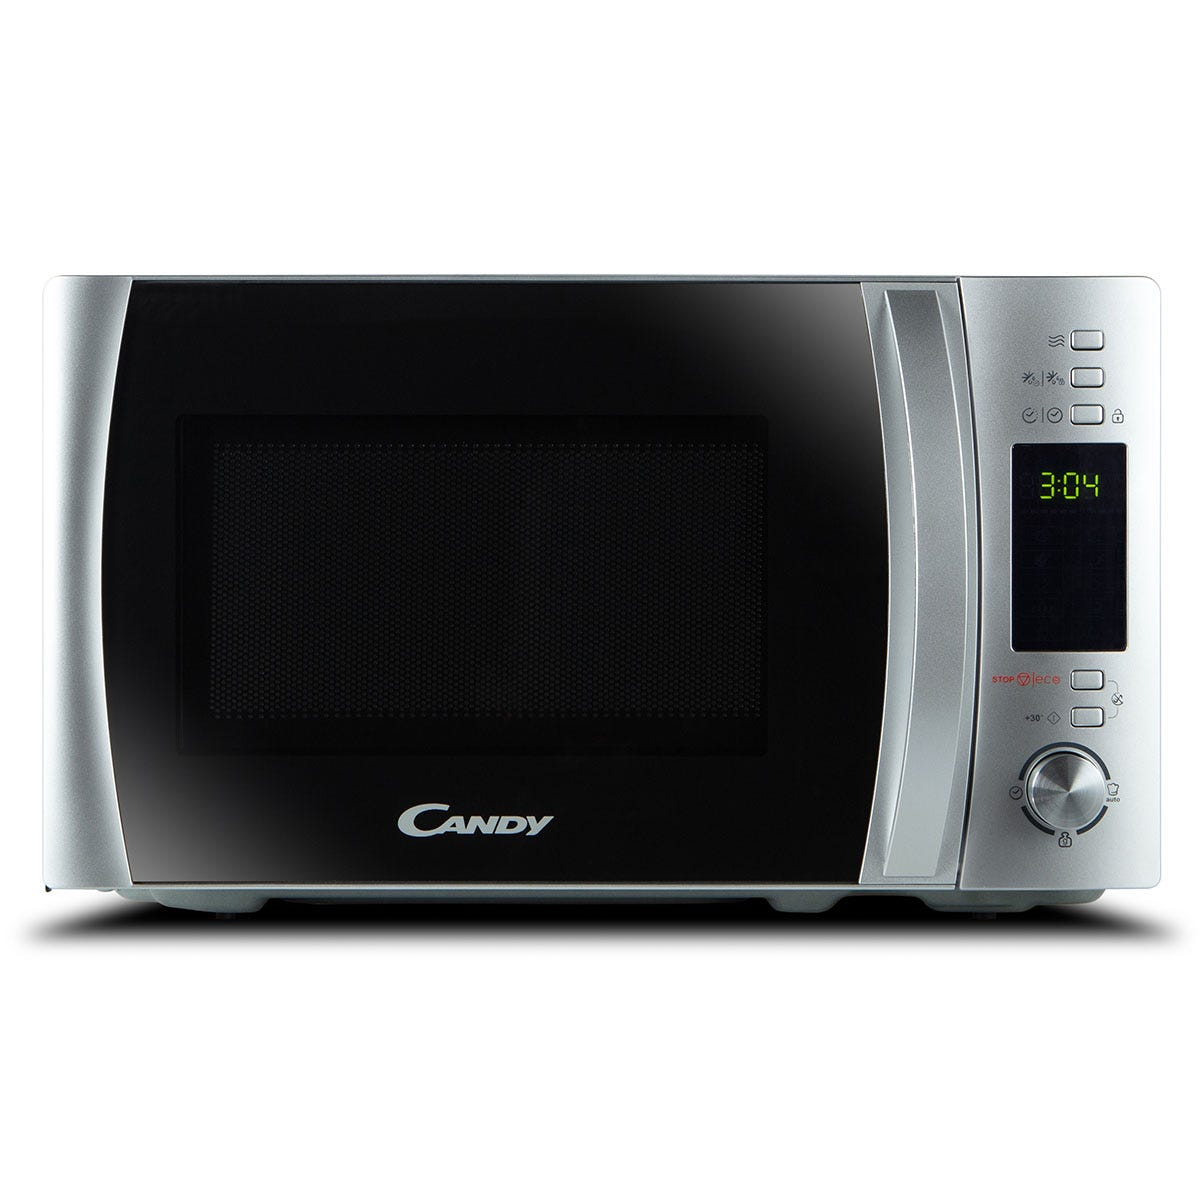 Candy CBWM30DS 900W Freestanding Digital 30L Microwave - Silver with Mirror Door